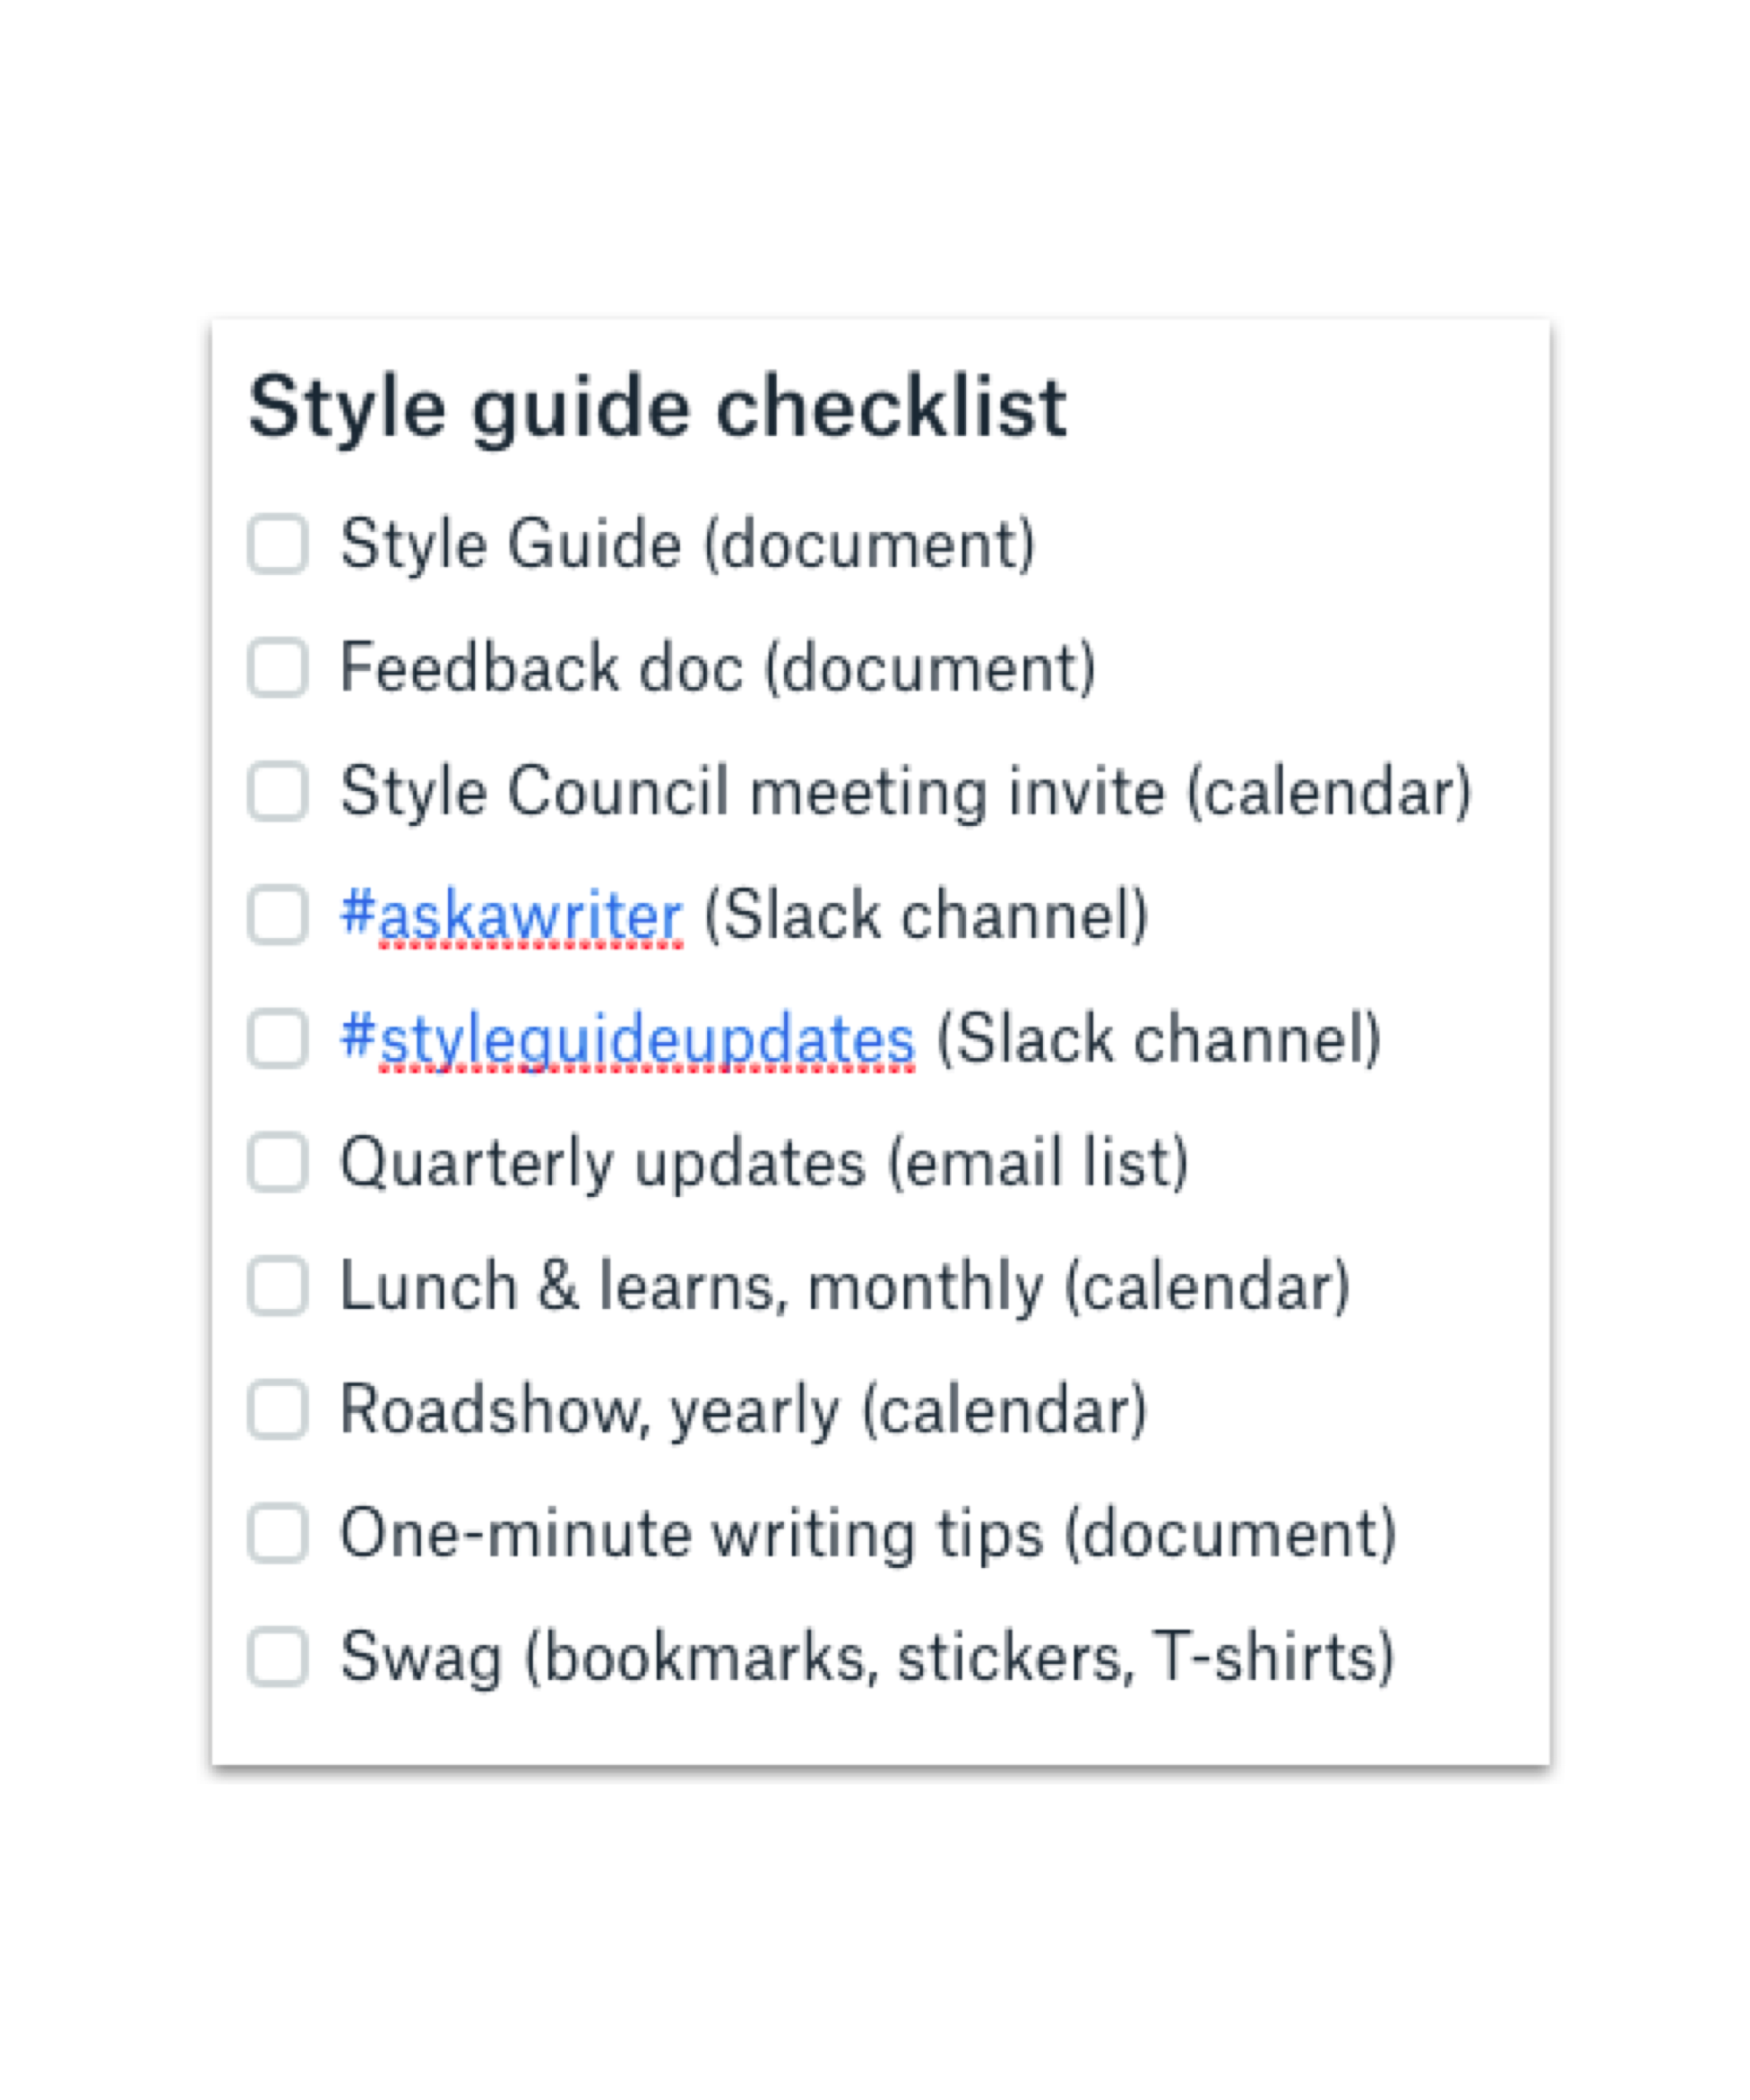 Example of a style guide governance checklist